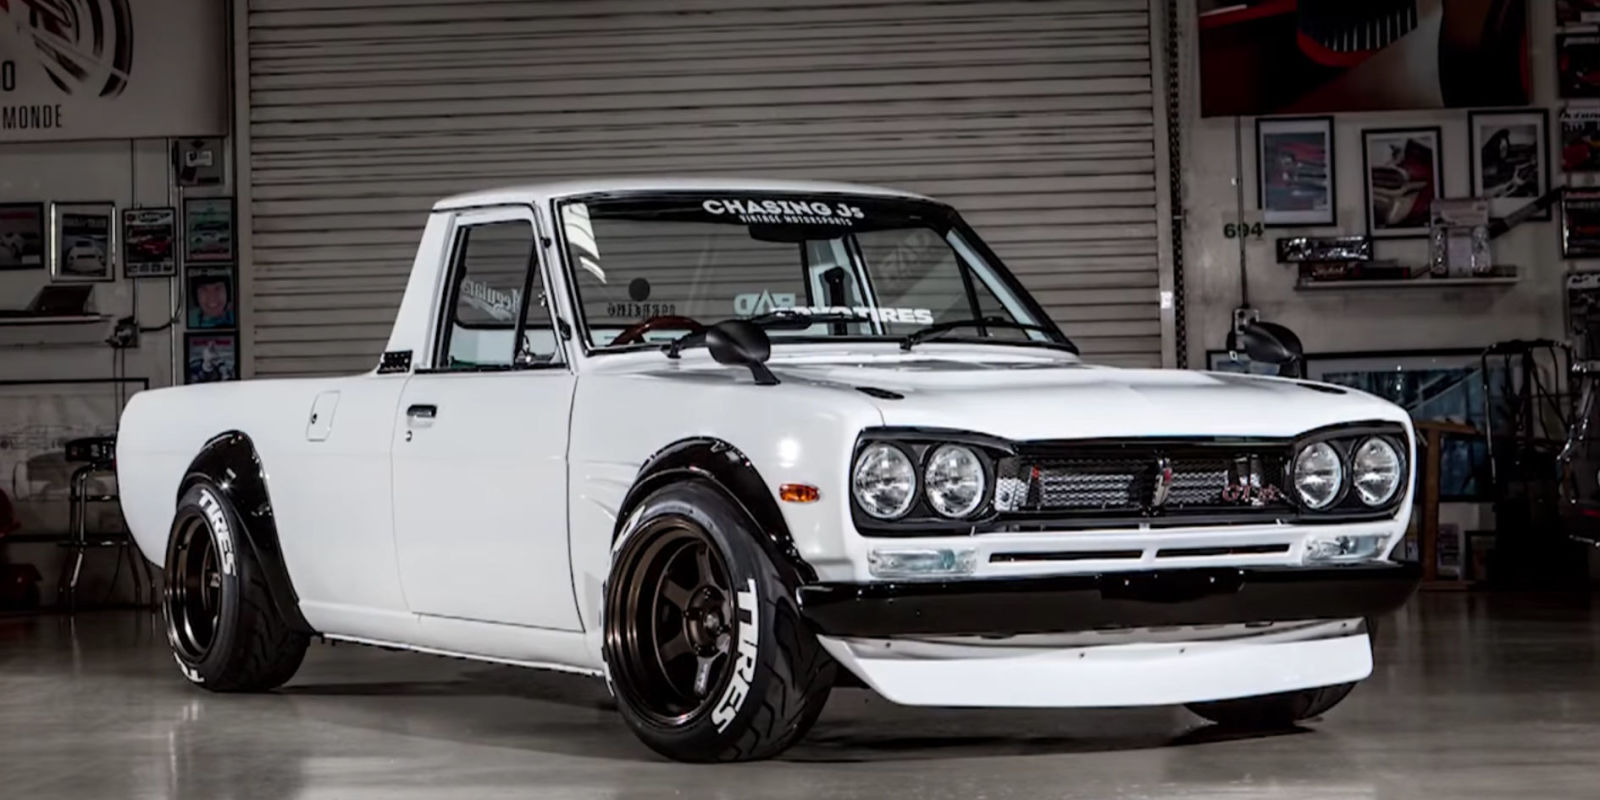 Nissan datsun 510 truck - Datsun Truck Tuesday You All Know We Had To Mention Dnicle His Built Sr20 Datsun 1200 This Is Pure Beauty Congratulations To You And What You